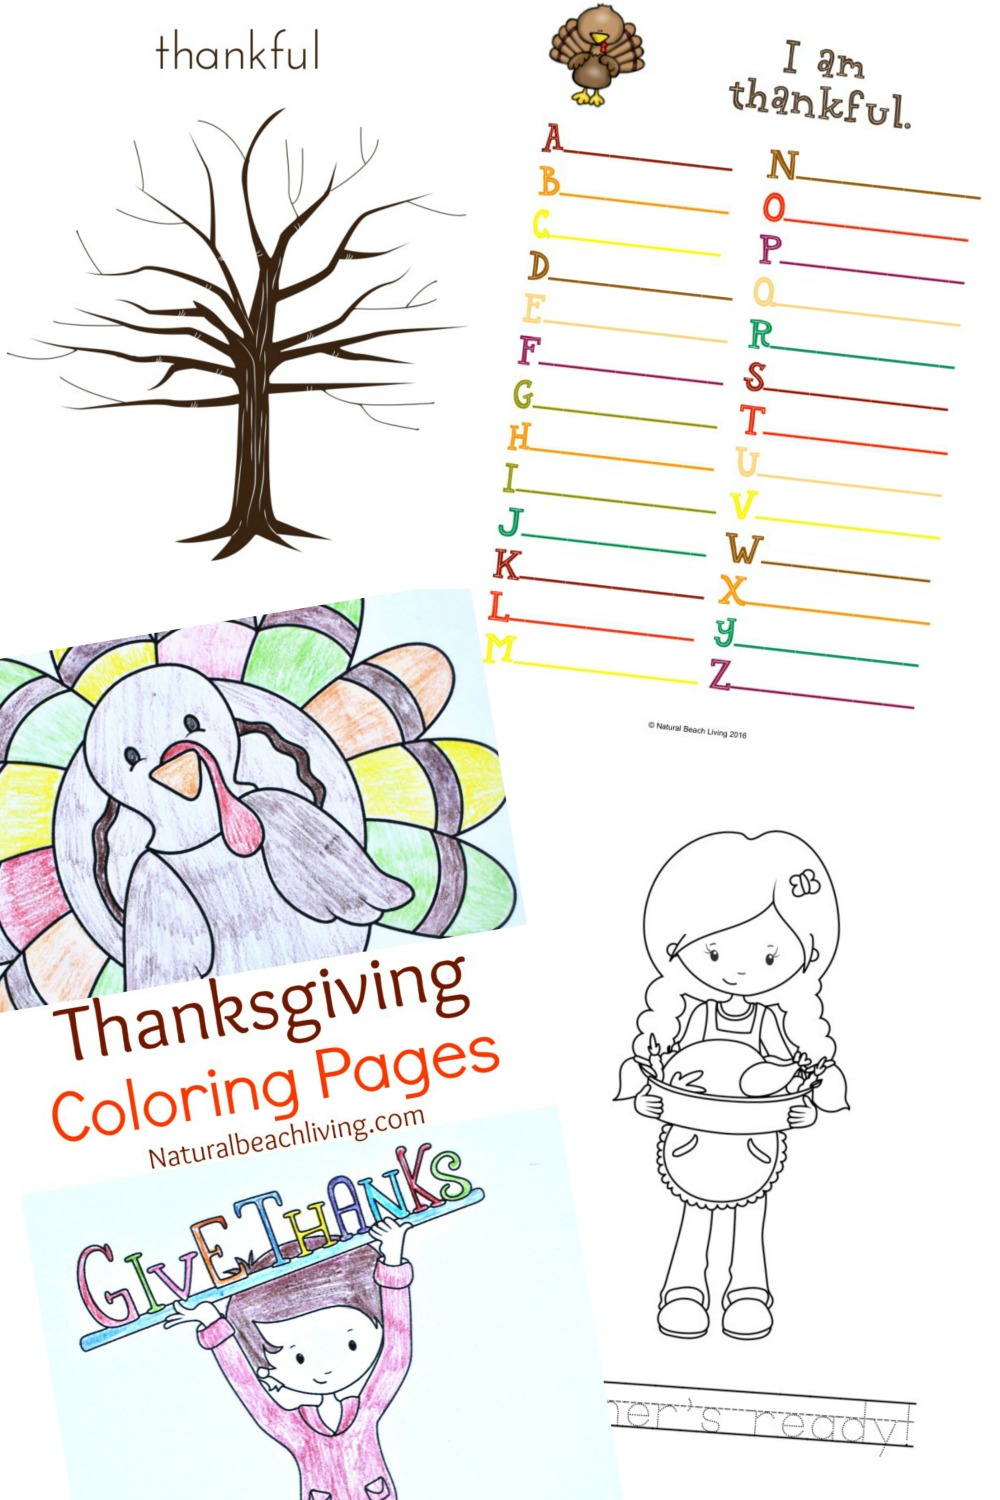 Thanksgiving Printables for Kids and Thankful Printable Activities, Thanksgiving Coloring Pages, I Am Thankful for Worksheet, Free Thanksgiving Printables and Fall Activities, Plus Thanksgiving Crafts and lots of Thanksgiving ideas for kids, Thankful tree, Find The Best Free Thanksgiving Printables for Kids Here #Thanksgiving #Thankful